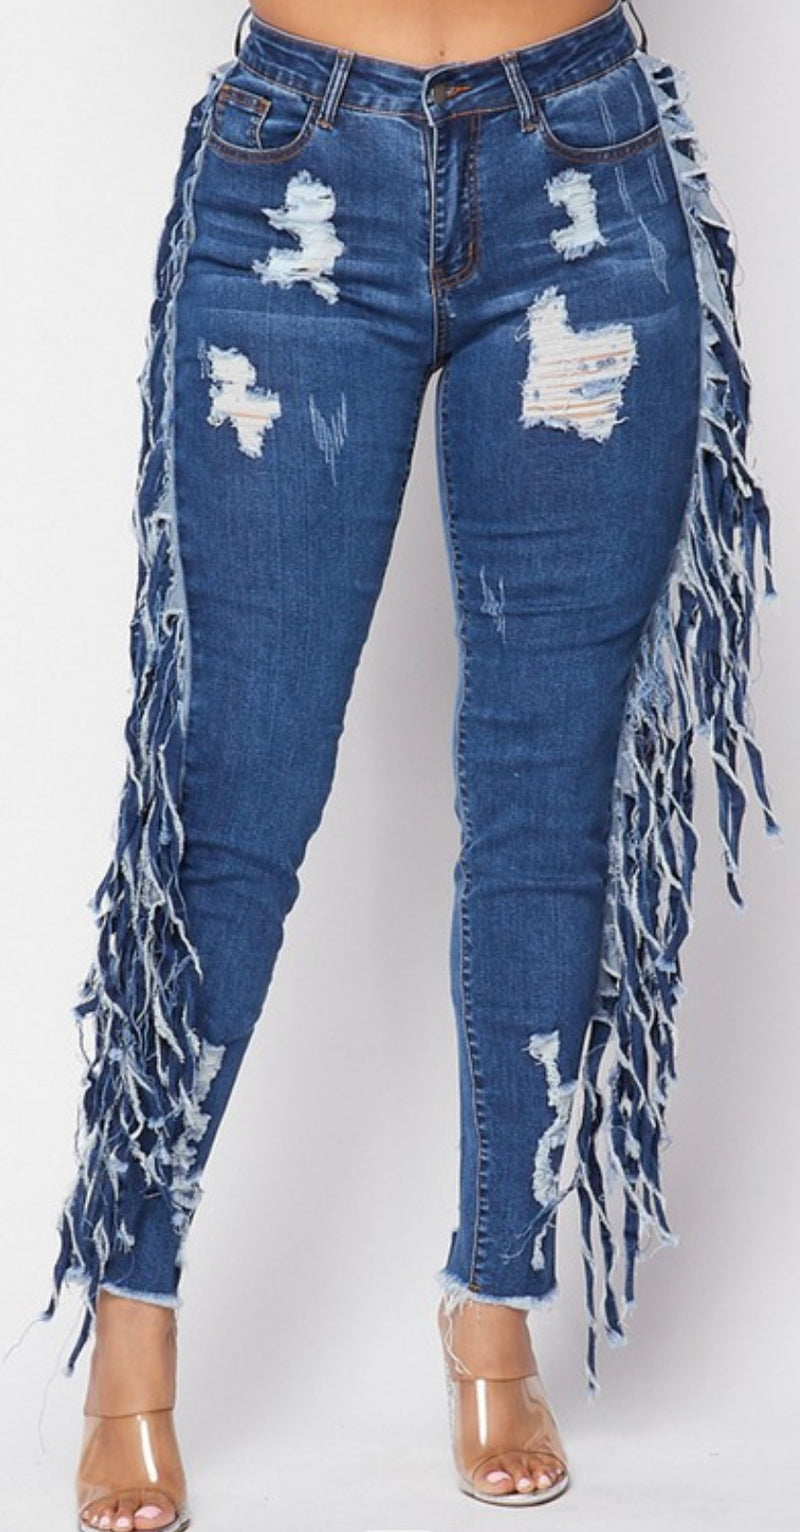 Tattered fitted jeans with fun fringes